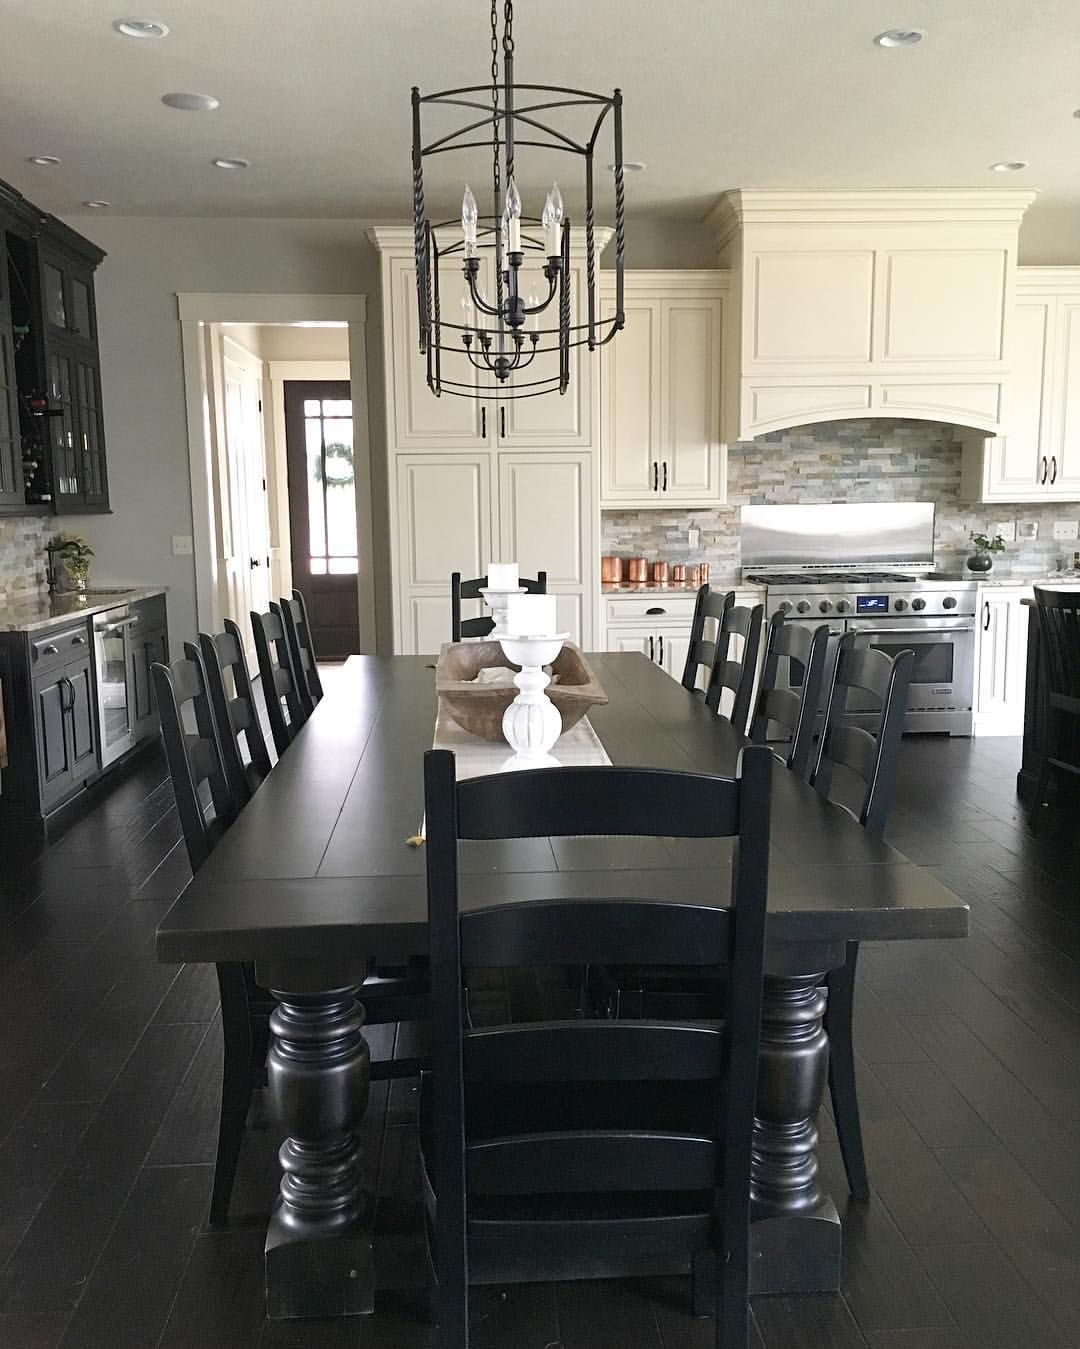 Dining Room Black And White: Black And White Modern Farmhouse Kitchen With Long Dining